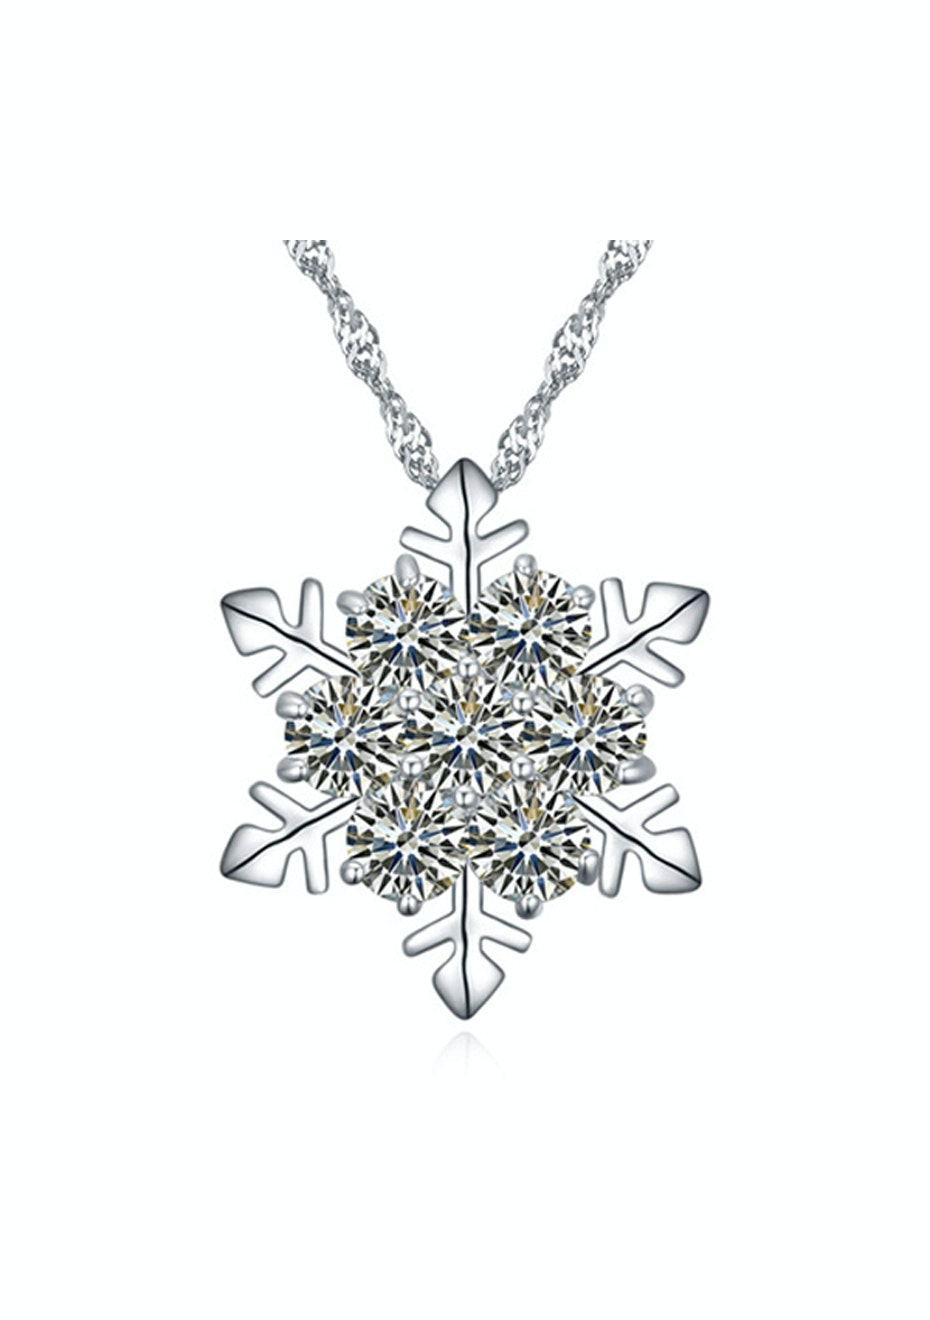 Frozen Flake Pendant Necklace Embellished with Crystals from Swarovski -CLR